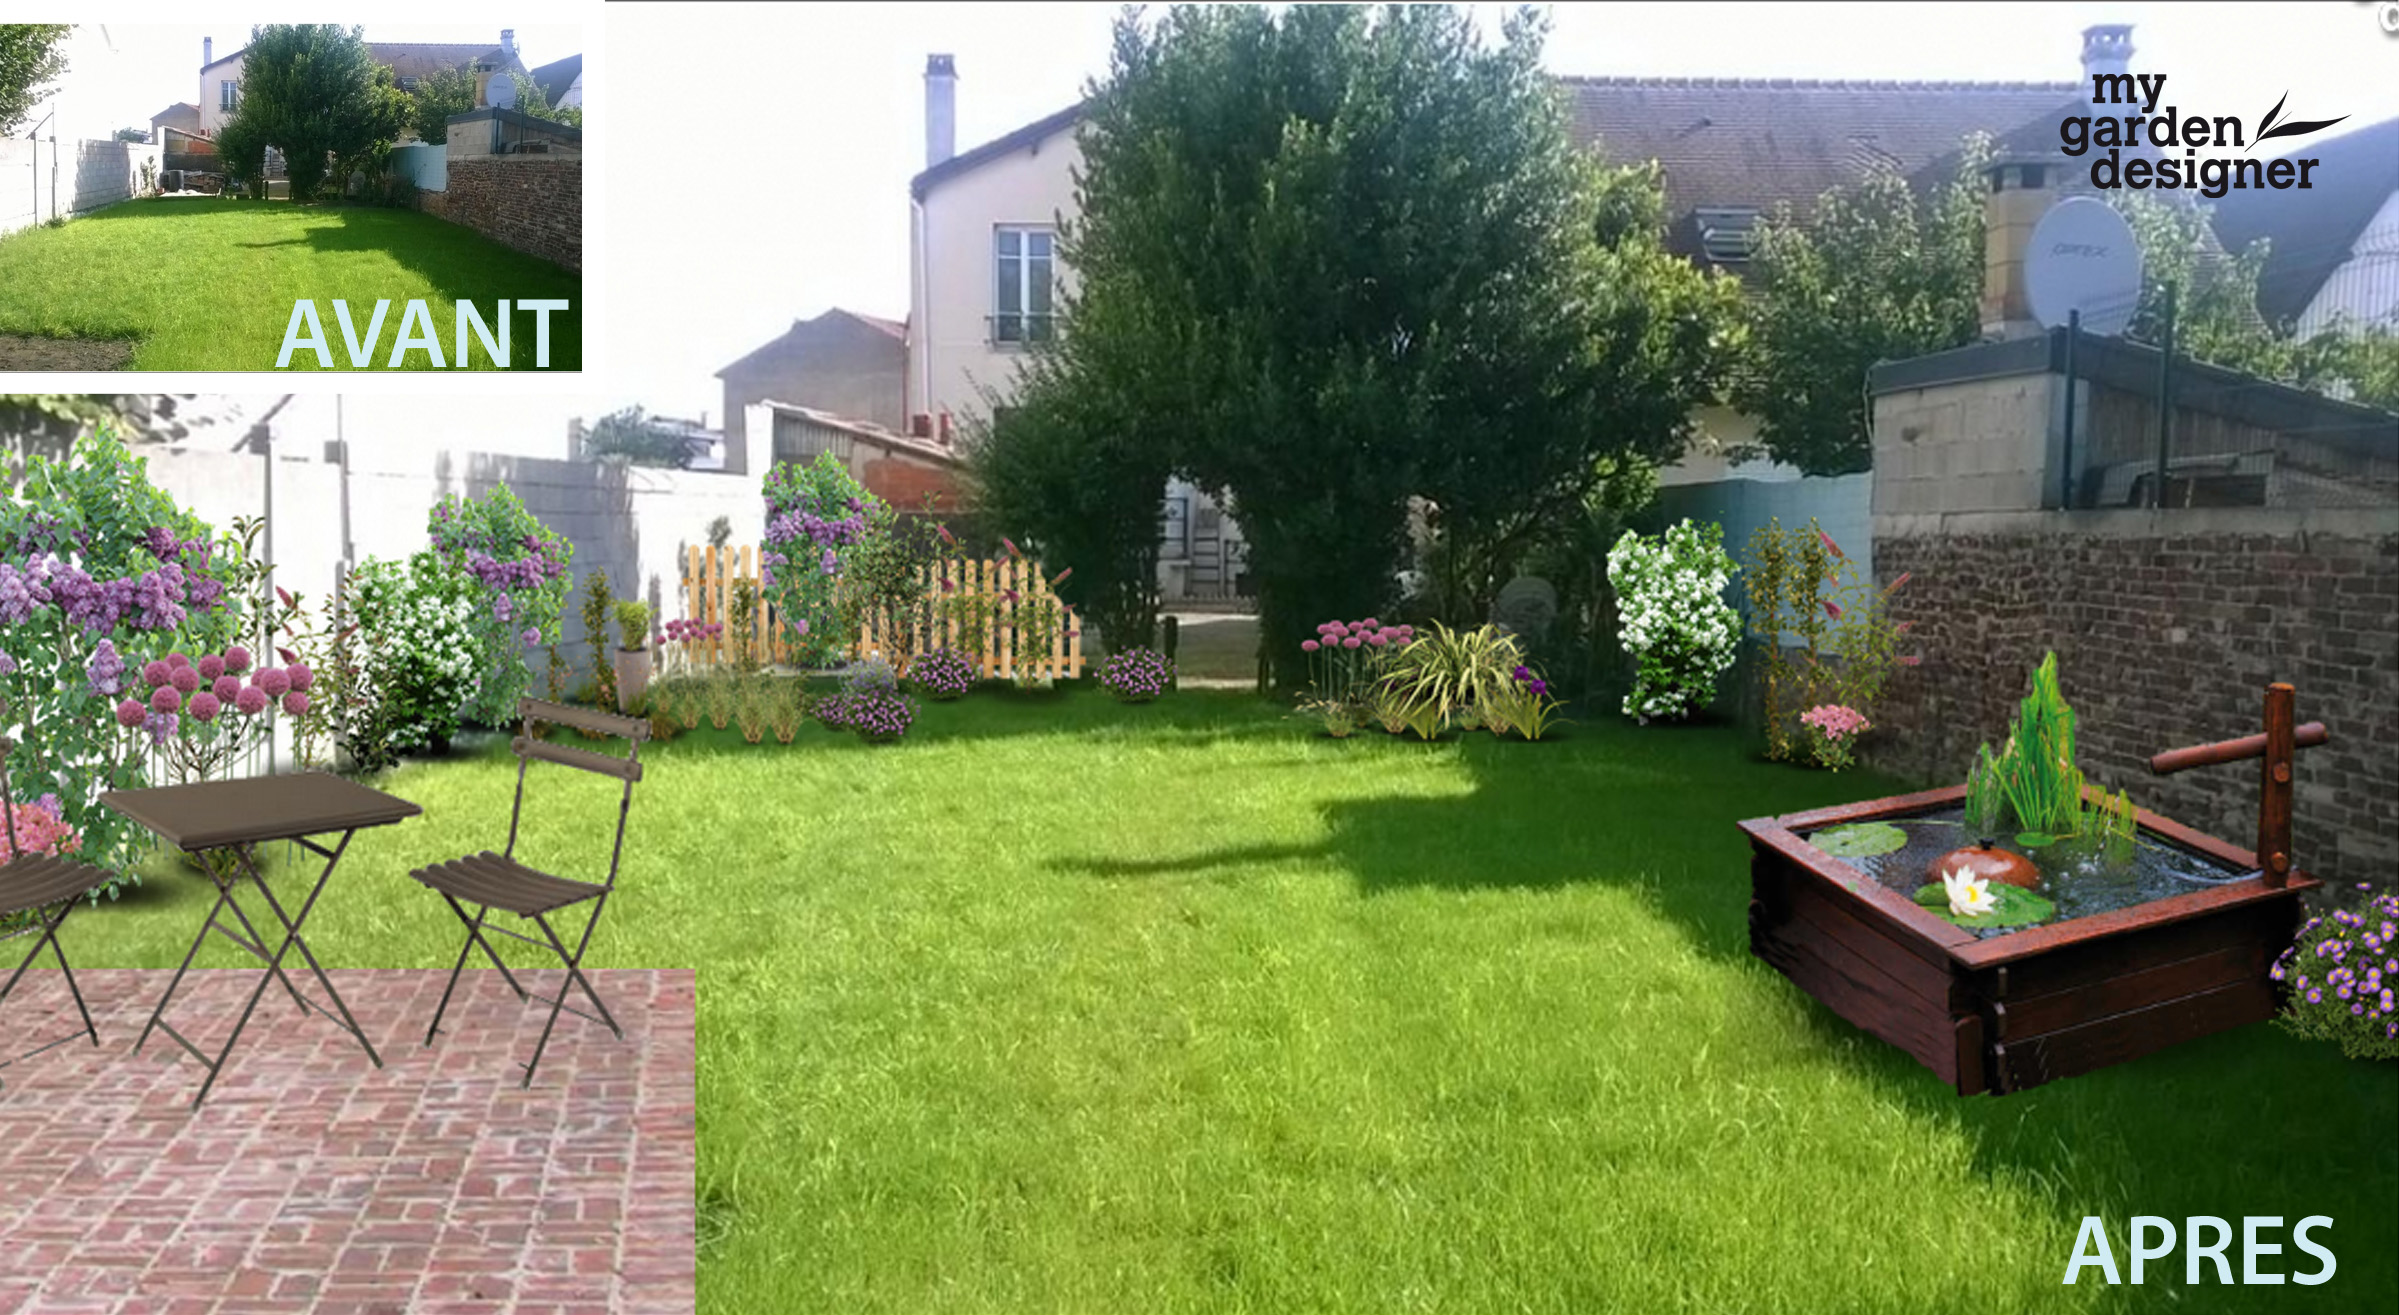 Am nager un jardin carr en ile de france monjardin for Amenagement jardin anglais